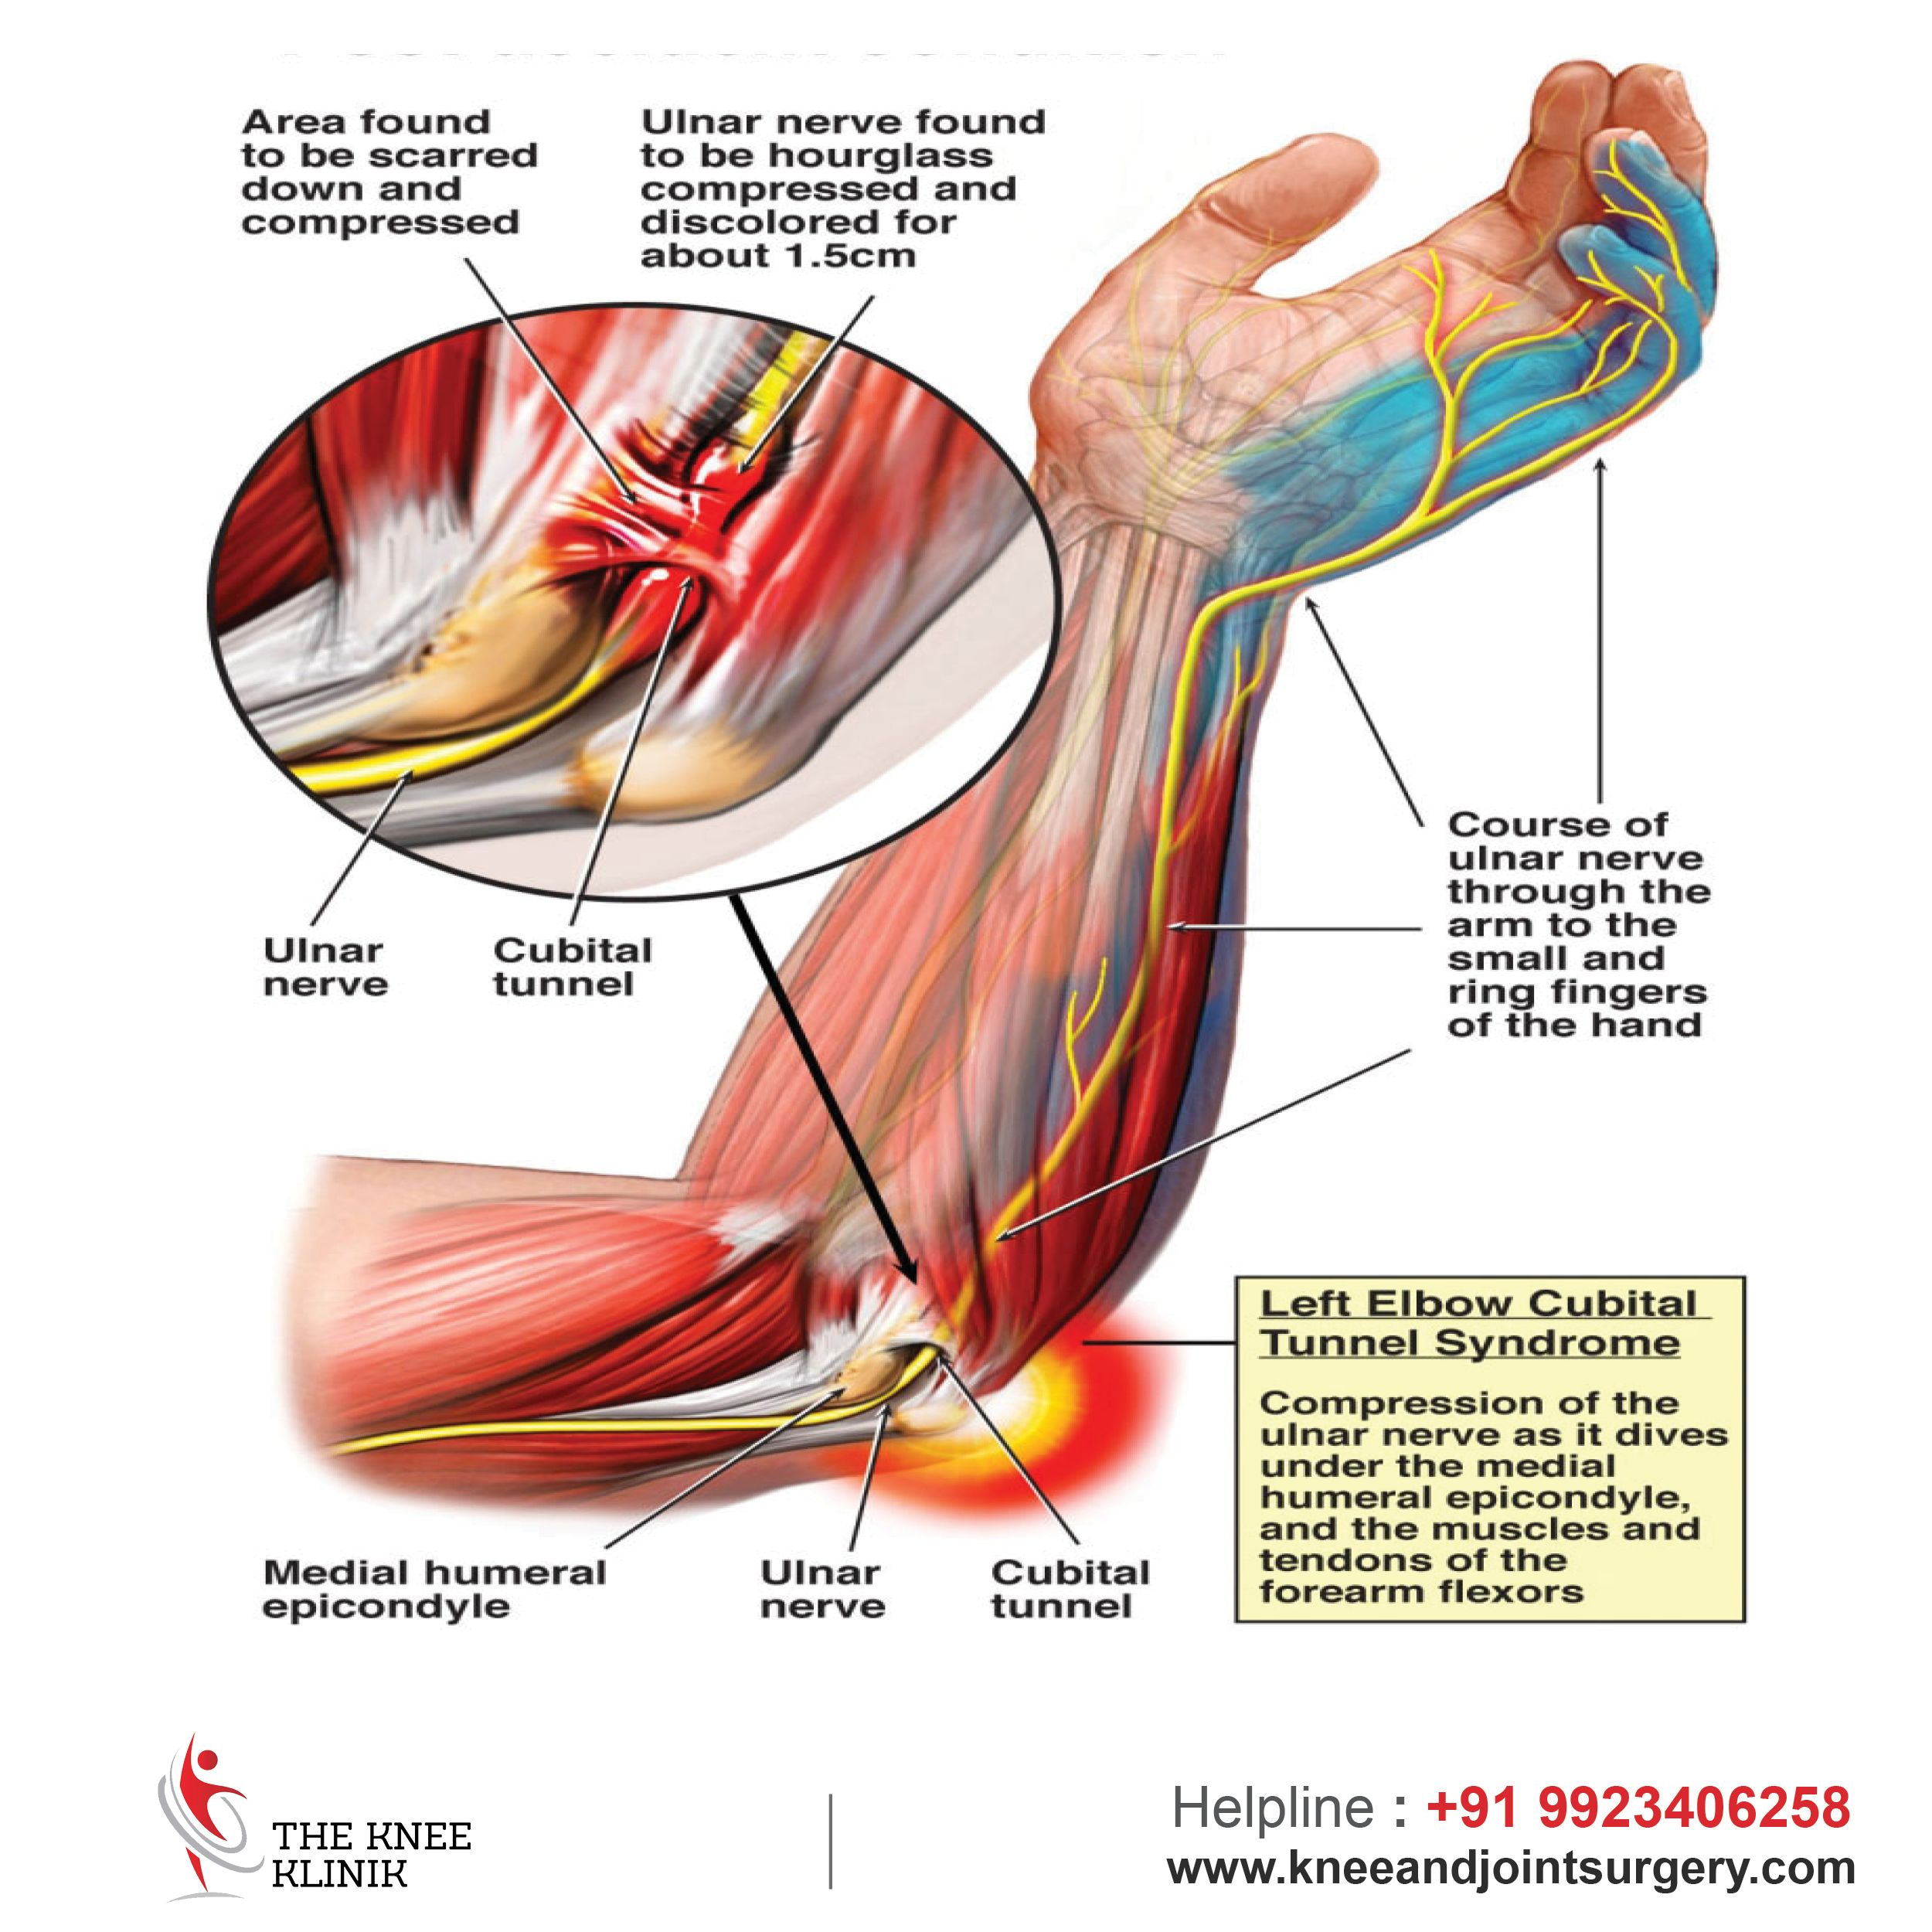 CubitalTunnelSyndrome : It is a condition caused by increased ...